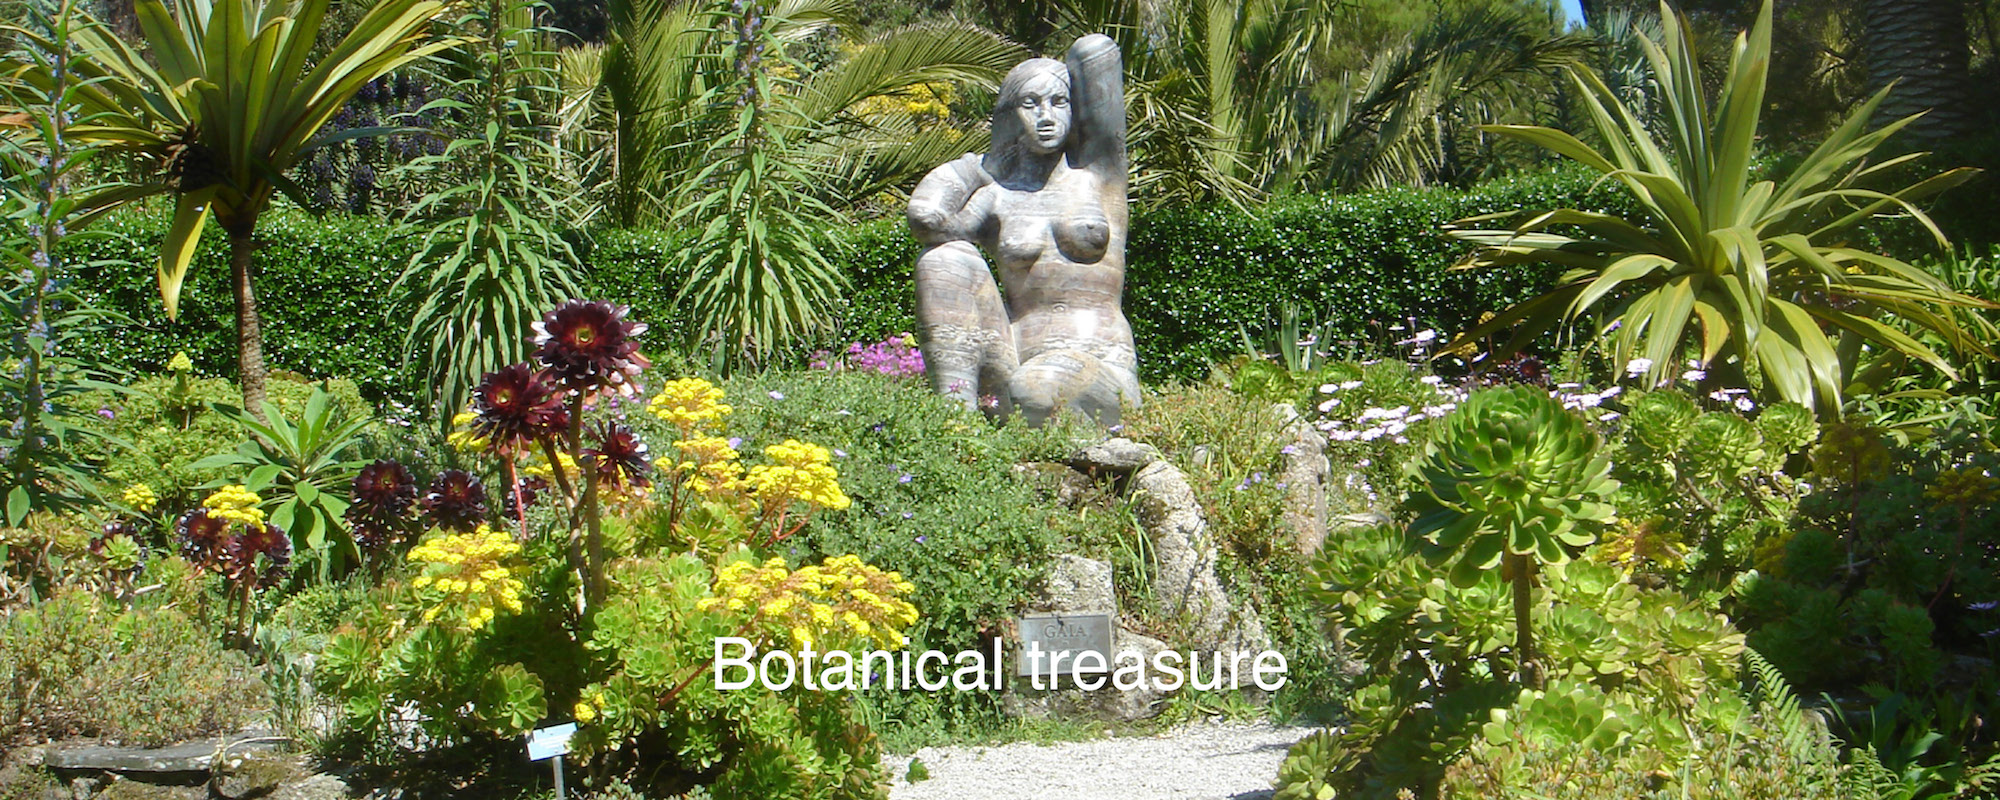 Botanical treasure